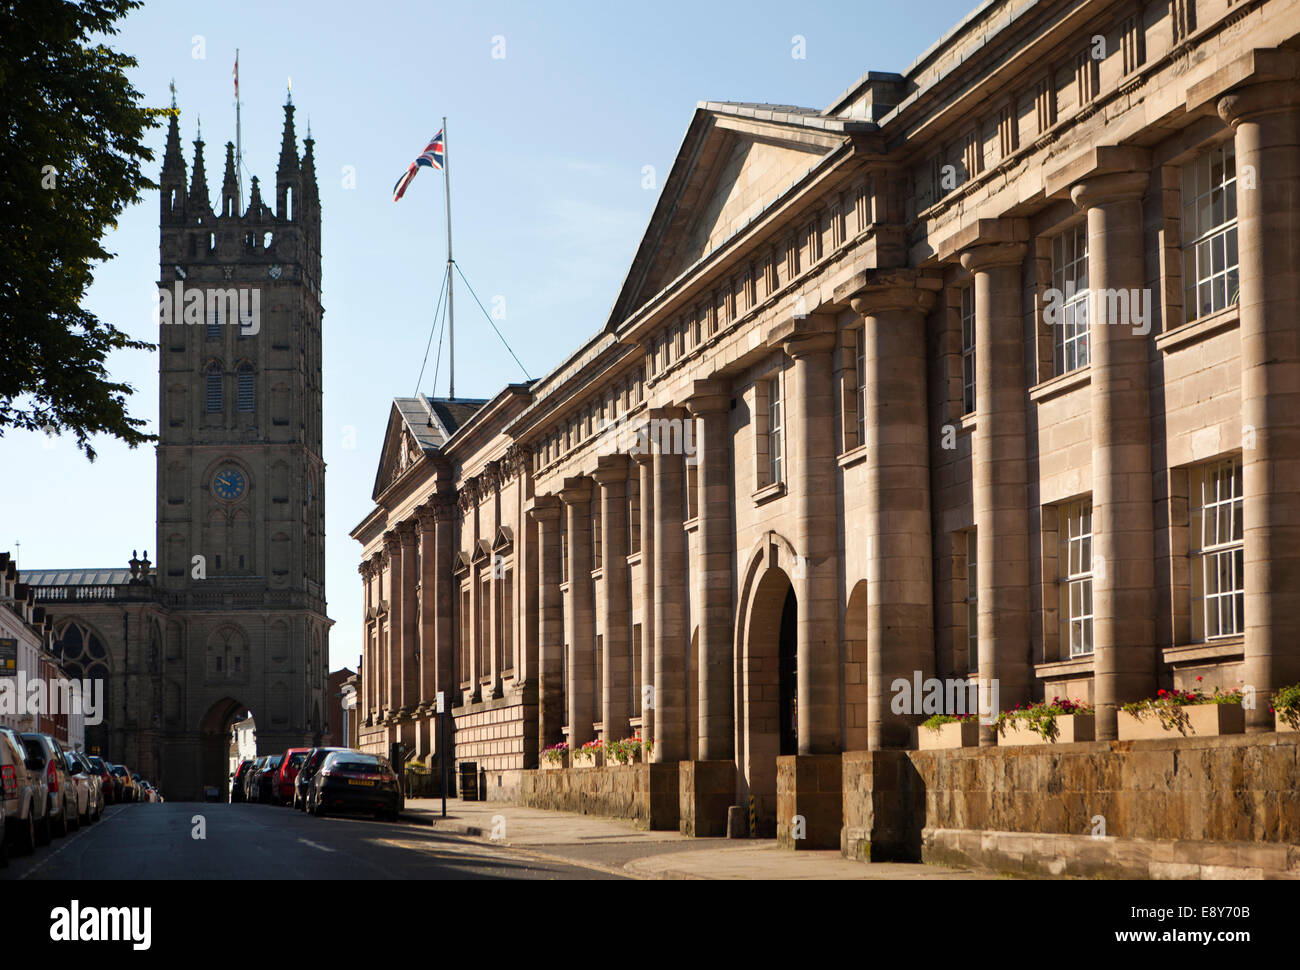 UK, England, Warwickshire, Warwick, Northgate Street, Shire Hall, Law Courts and St Mary's Collegiate Church - Stock Image